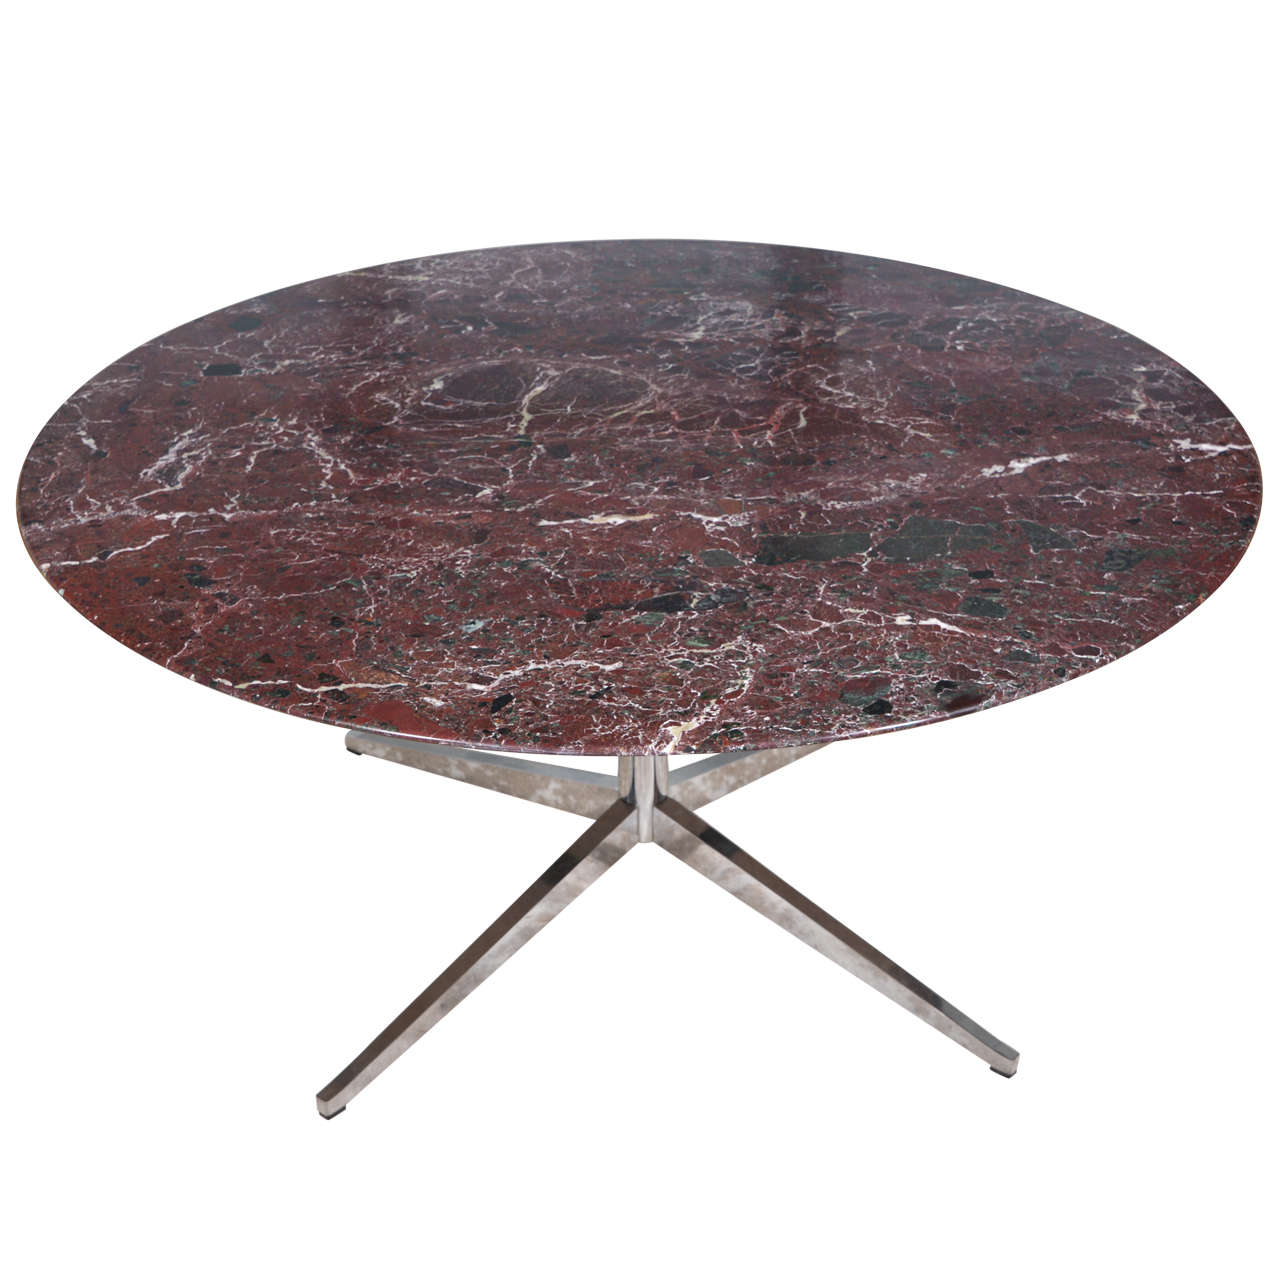 Florence Knoll Round Marble Top Dining Table at 1stdibs